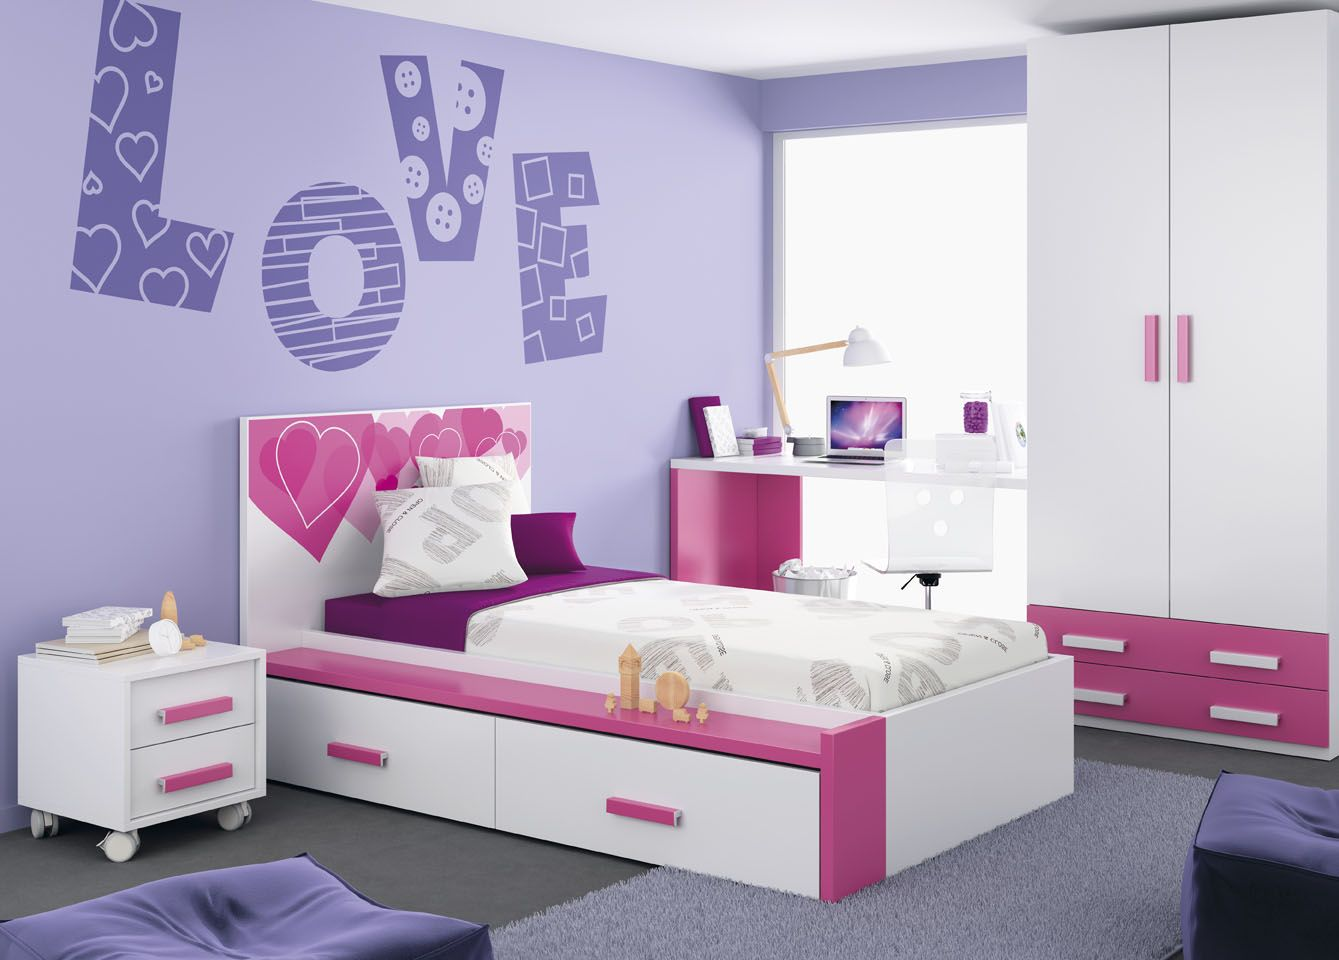 65 best decoración/ habitación juvenil /chicas images on pinterest